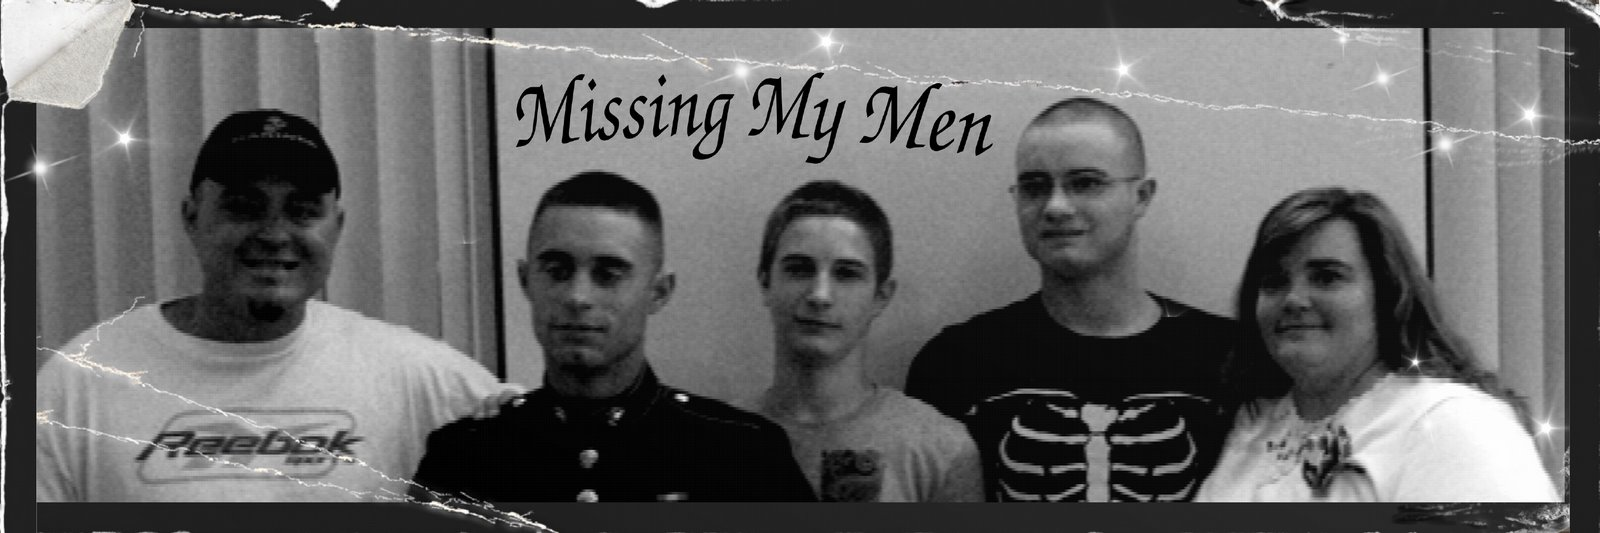 Missing My Men